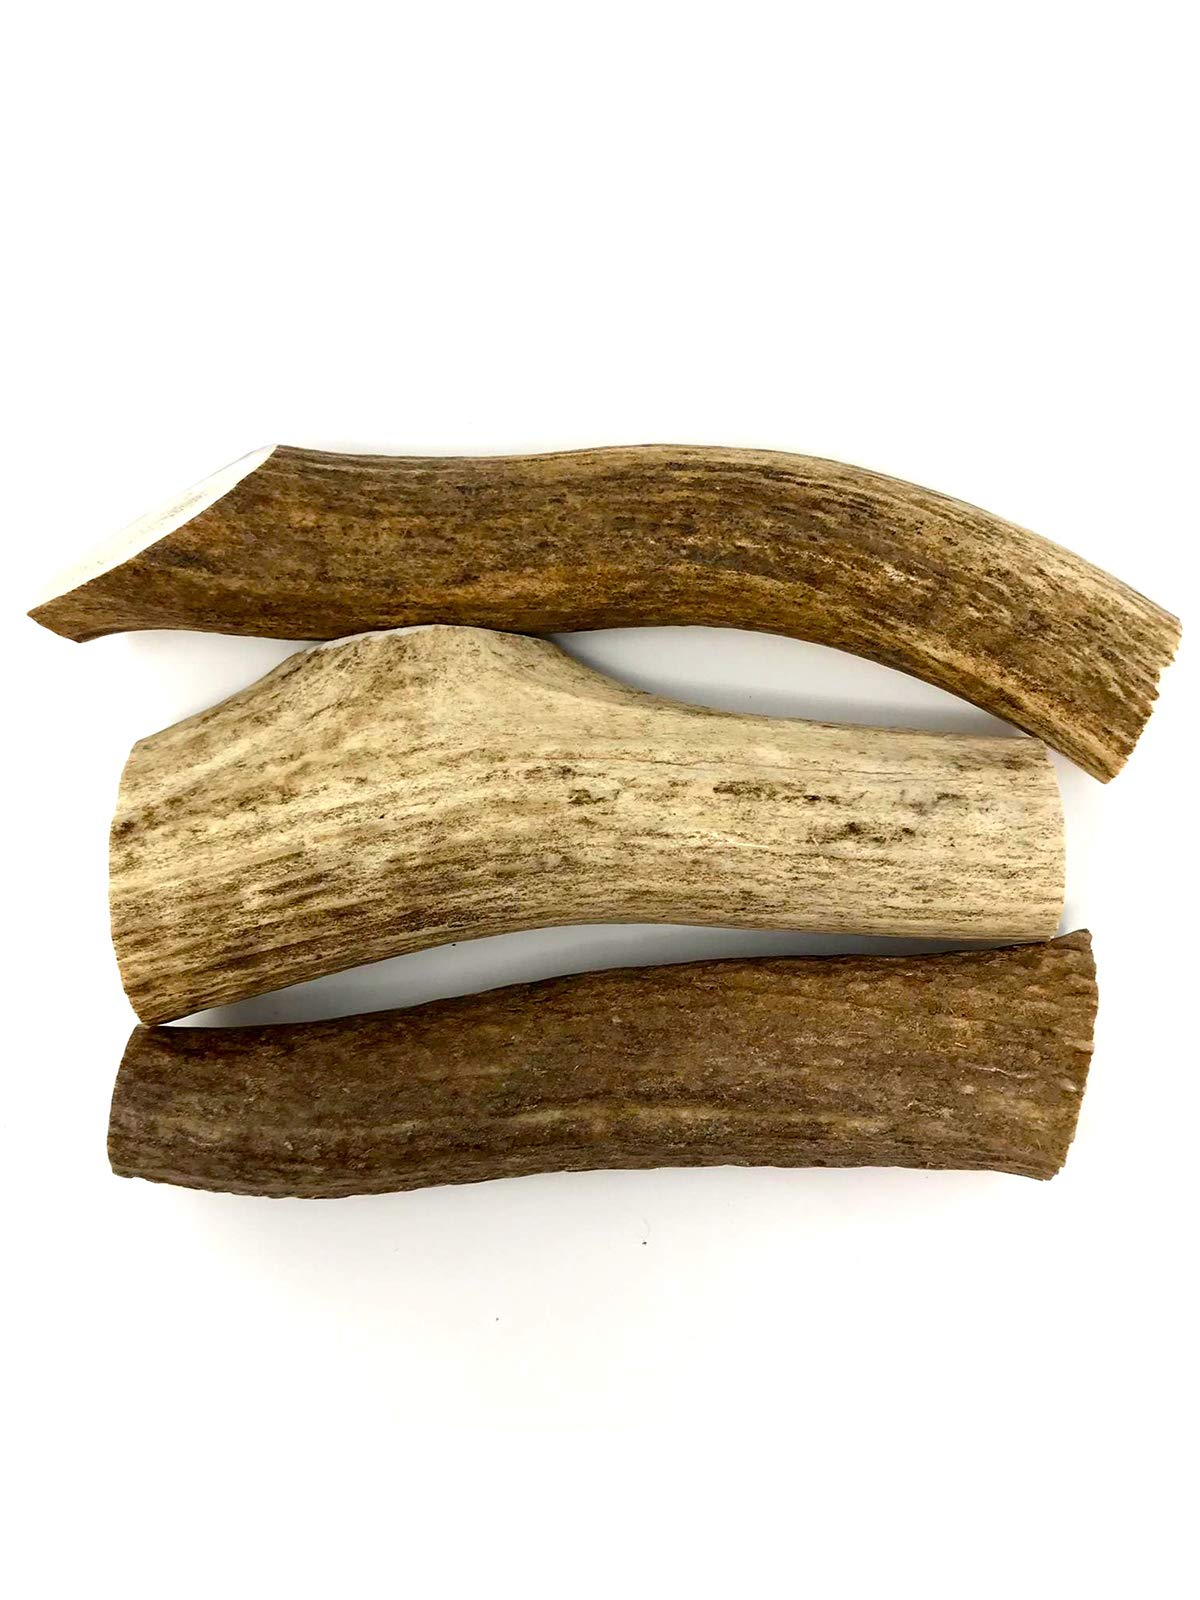 peaksNpaws Premium All-Natural Grade A Whole Elk Antlers for Dogs – Naturally Shed in The Rocky Mountains – No Additives, No Preservatives - Healthy and Delicious Treat - Made in USA